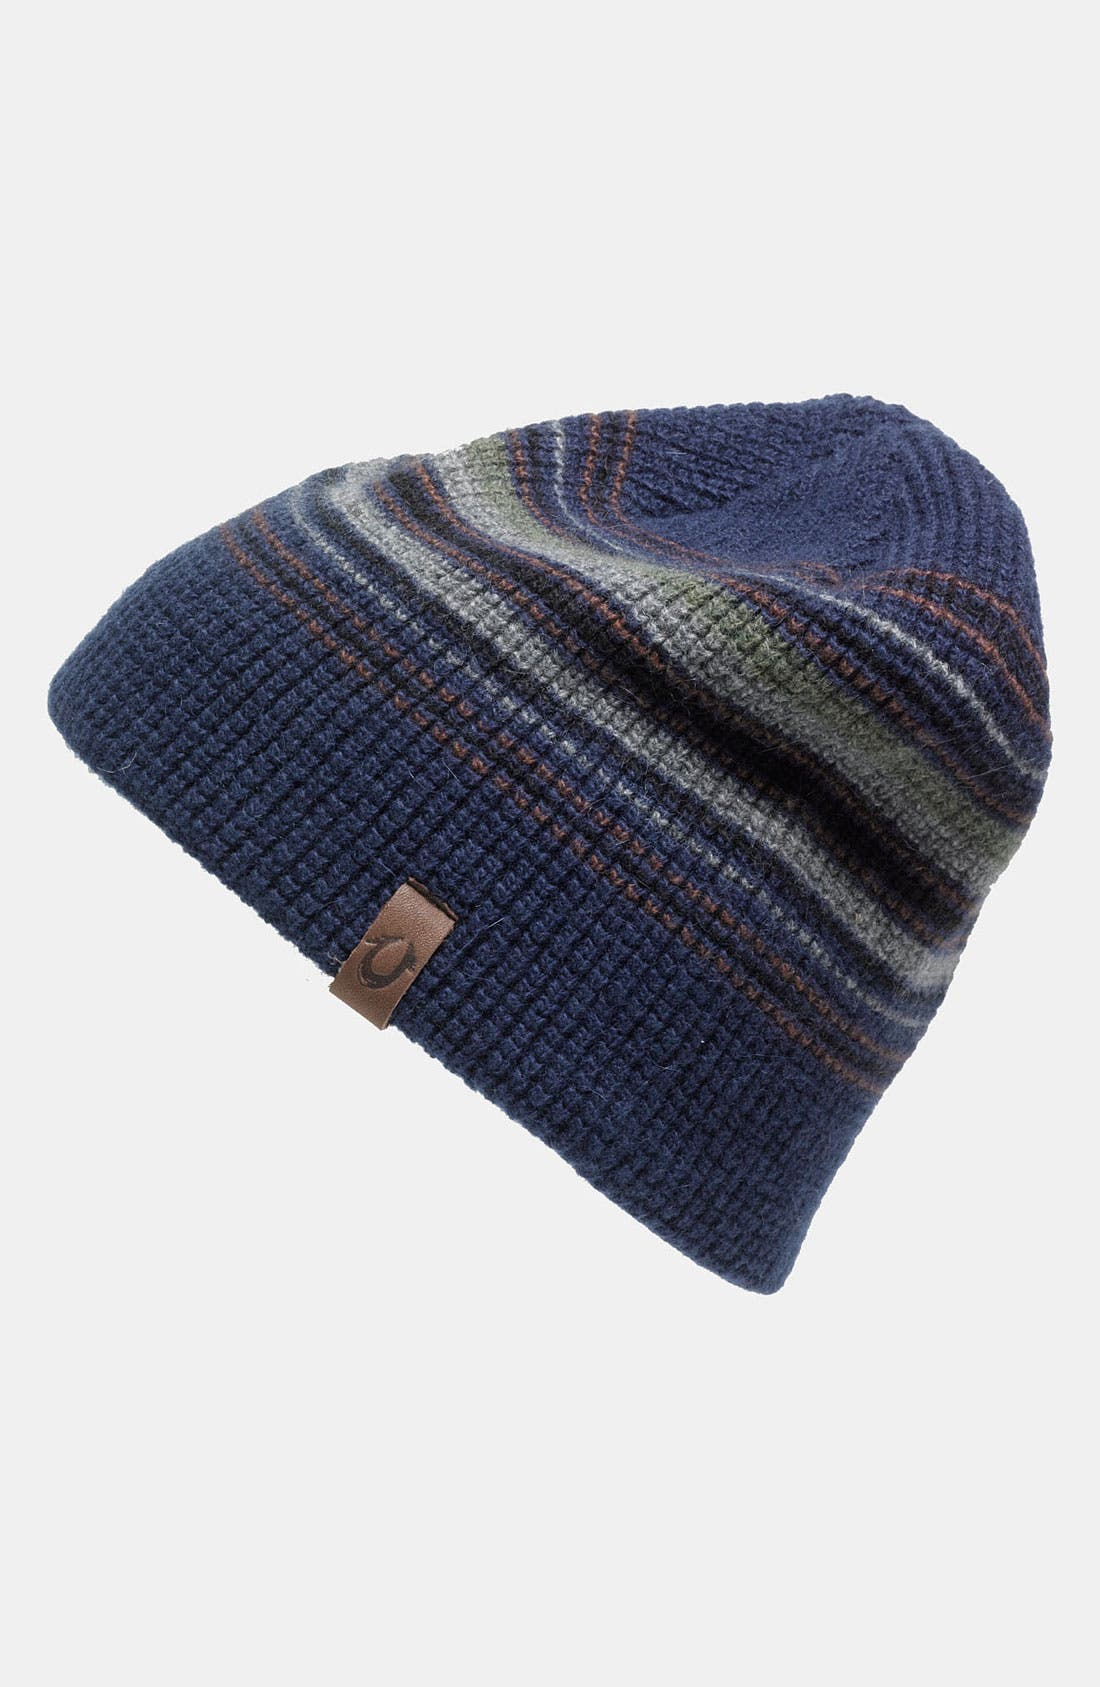 Main Image - True Religion Brand Jeans Stripe Waffle Knit Cap